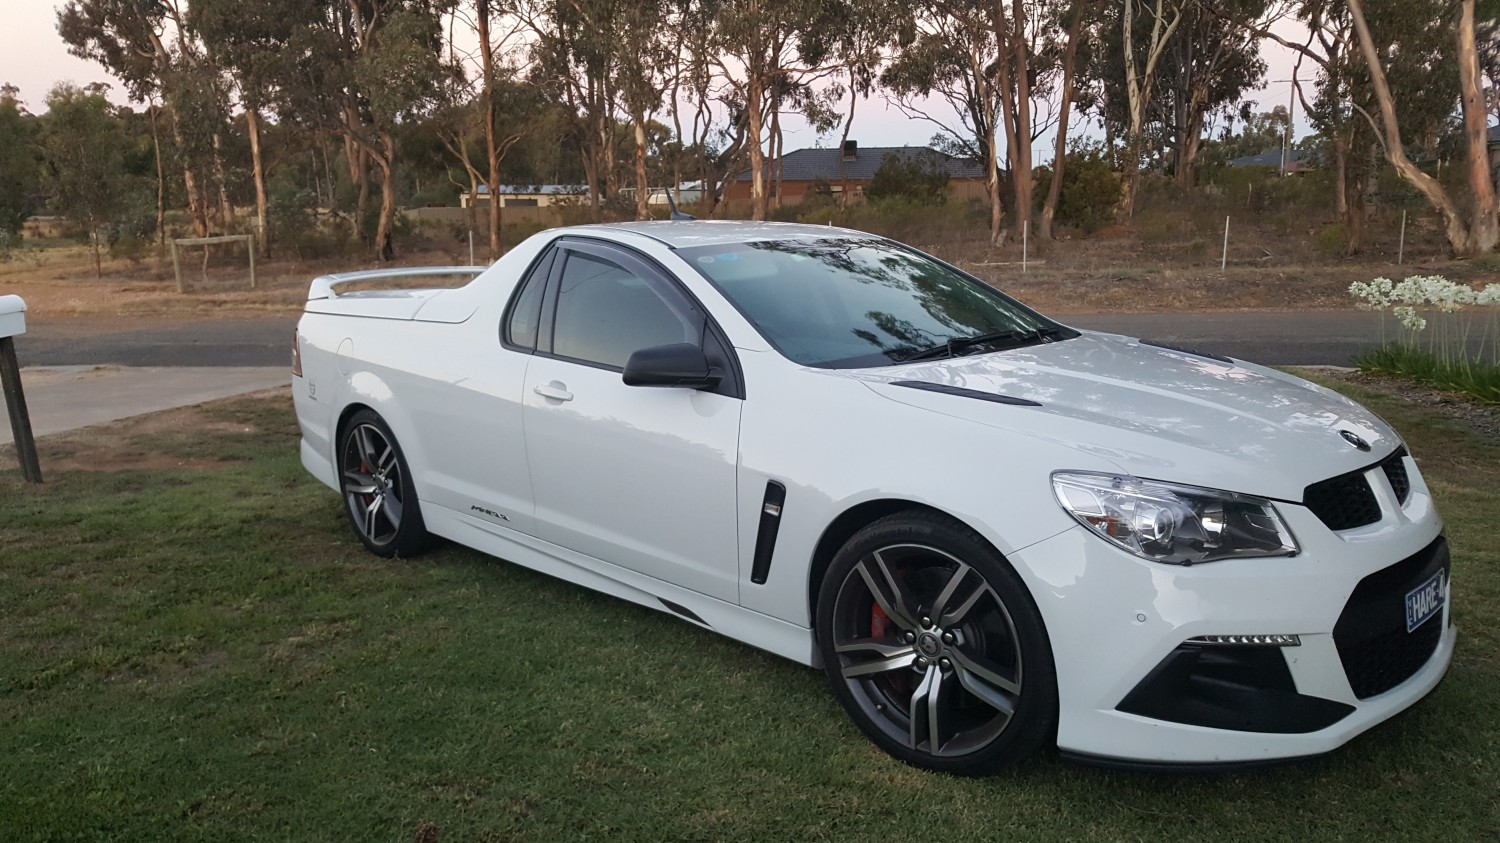 2016 Holden Special Vehicles HSV Maloo R8 VF II 6.2L LSA